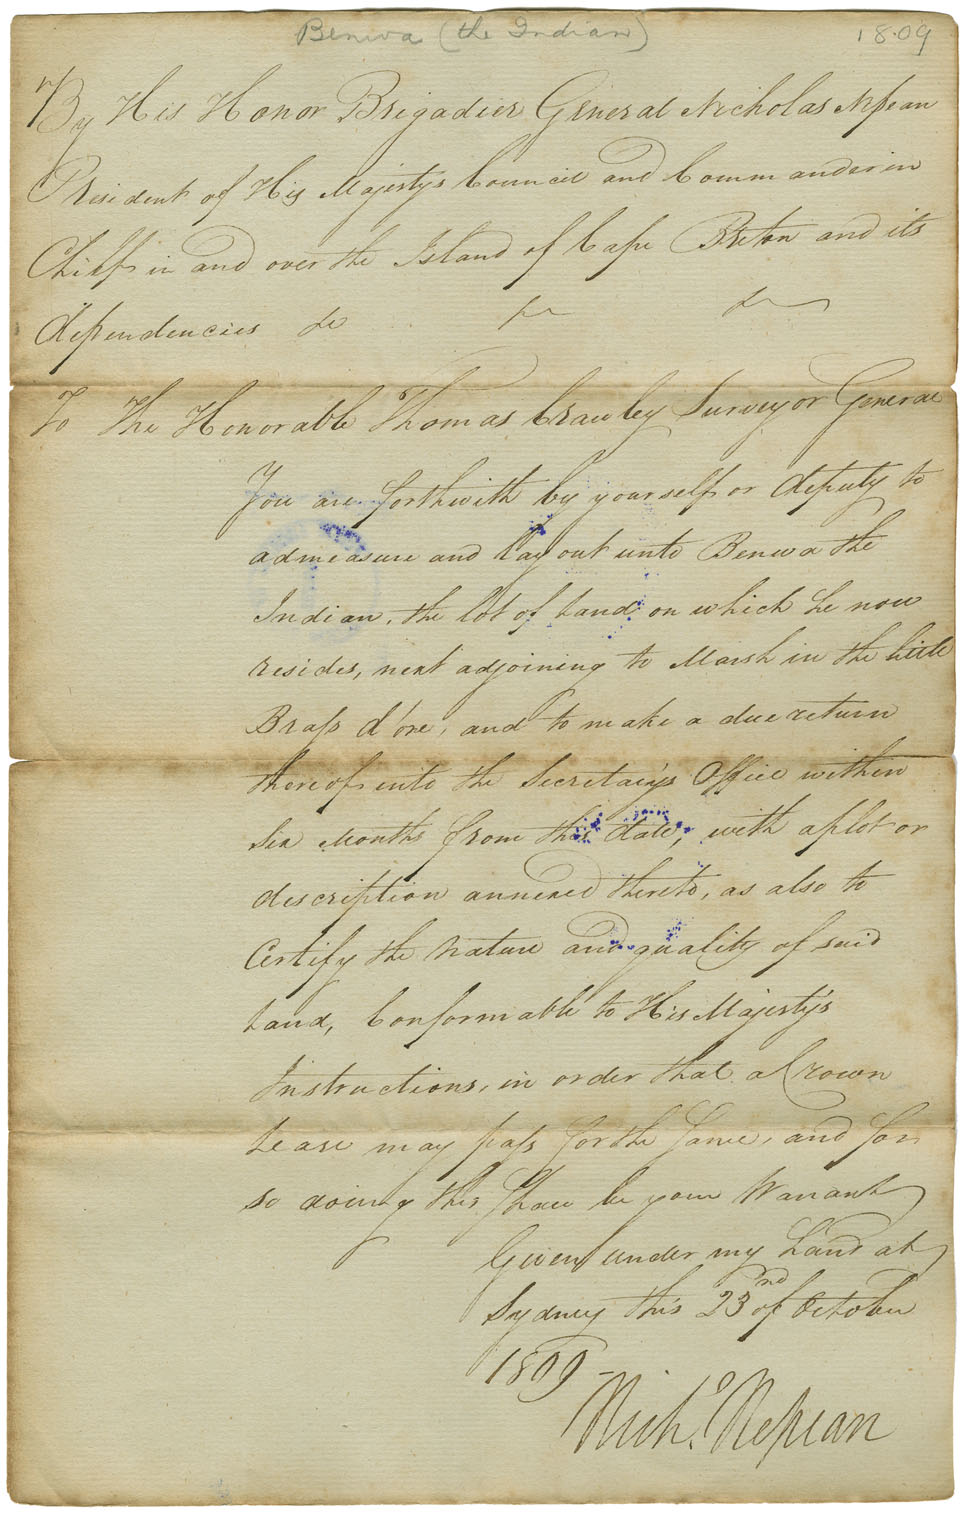 Warrant to survey Little Bras d'Or for Benwa [Benoit?] the Indian.